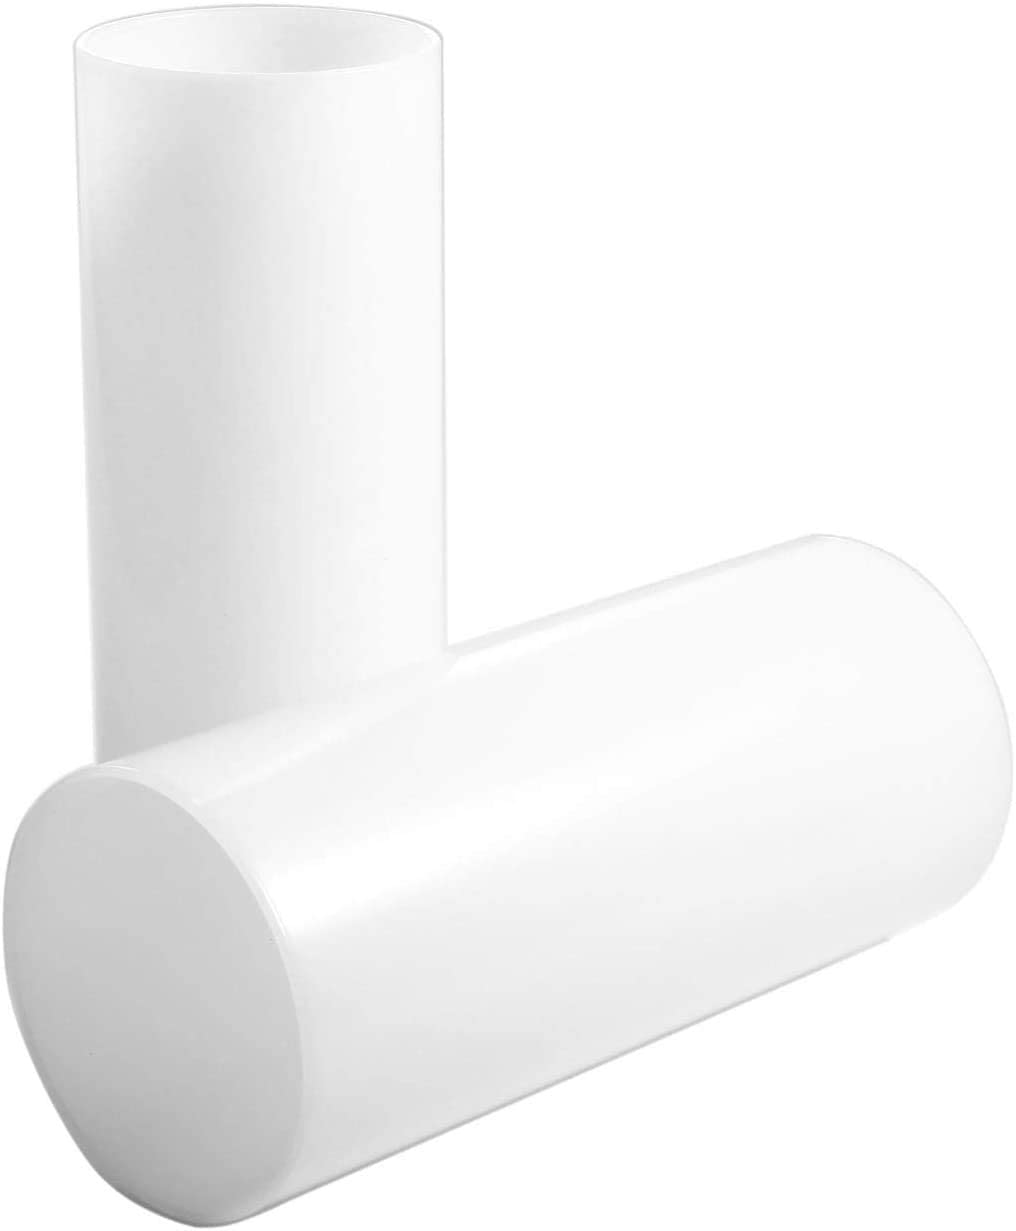 GoLucky White Glass Shade Straight Cylinder Lamp Shade,Glass Candle Shade Replacement Accessory Glass Fixture Replacement 10,10